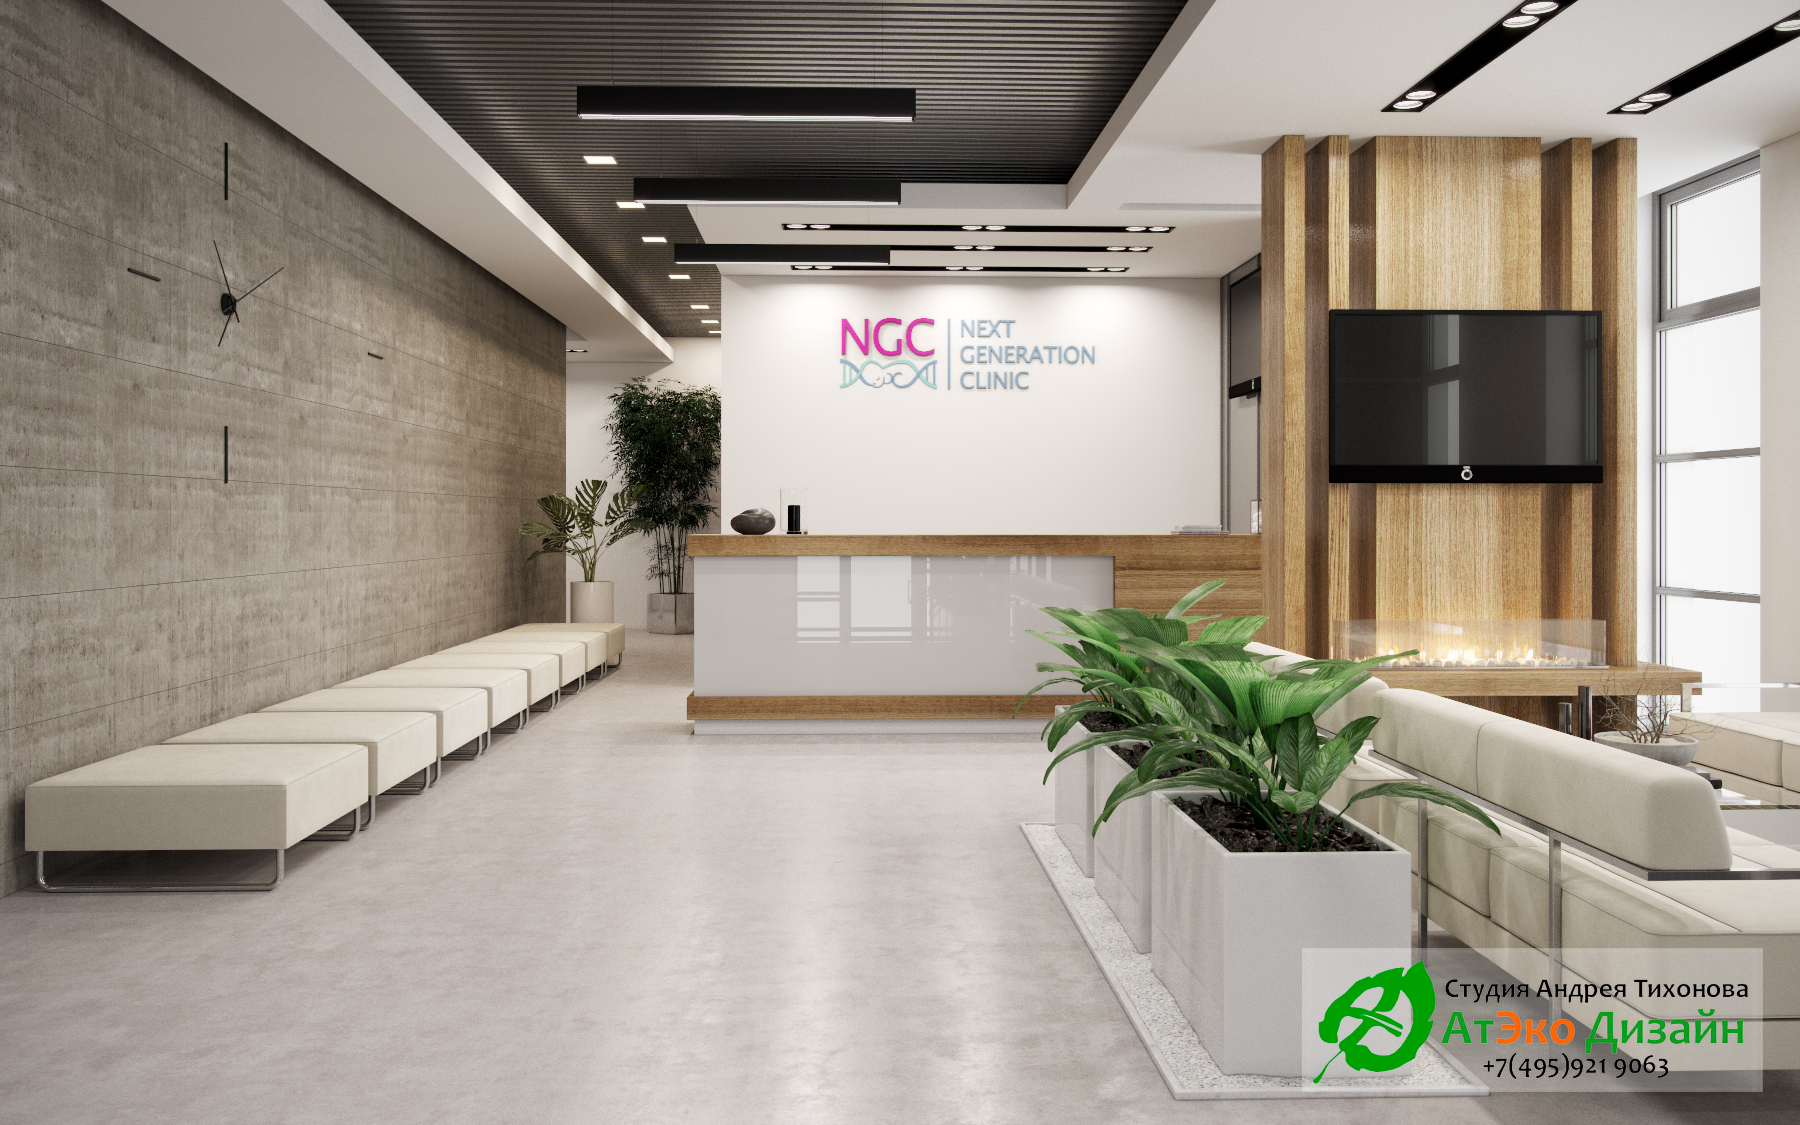 05_Next_Generation_Clinic_2VAR